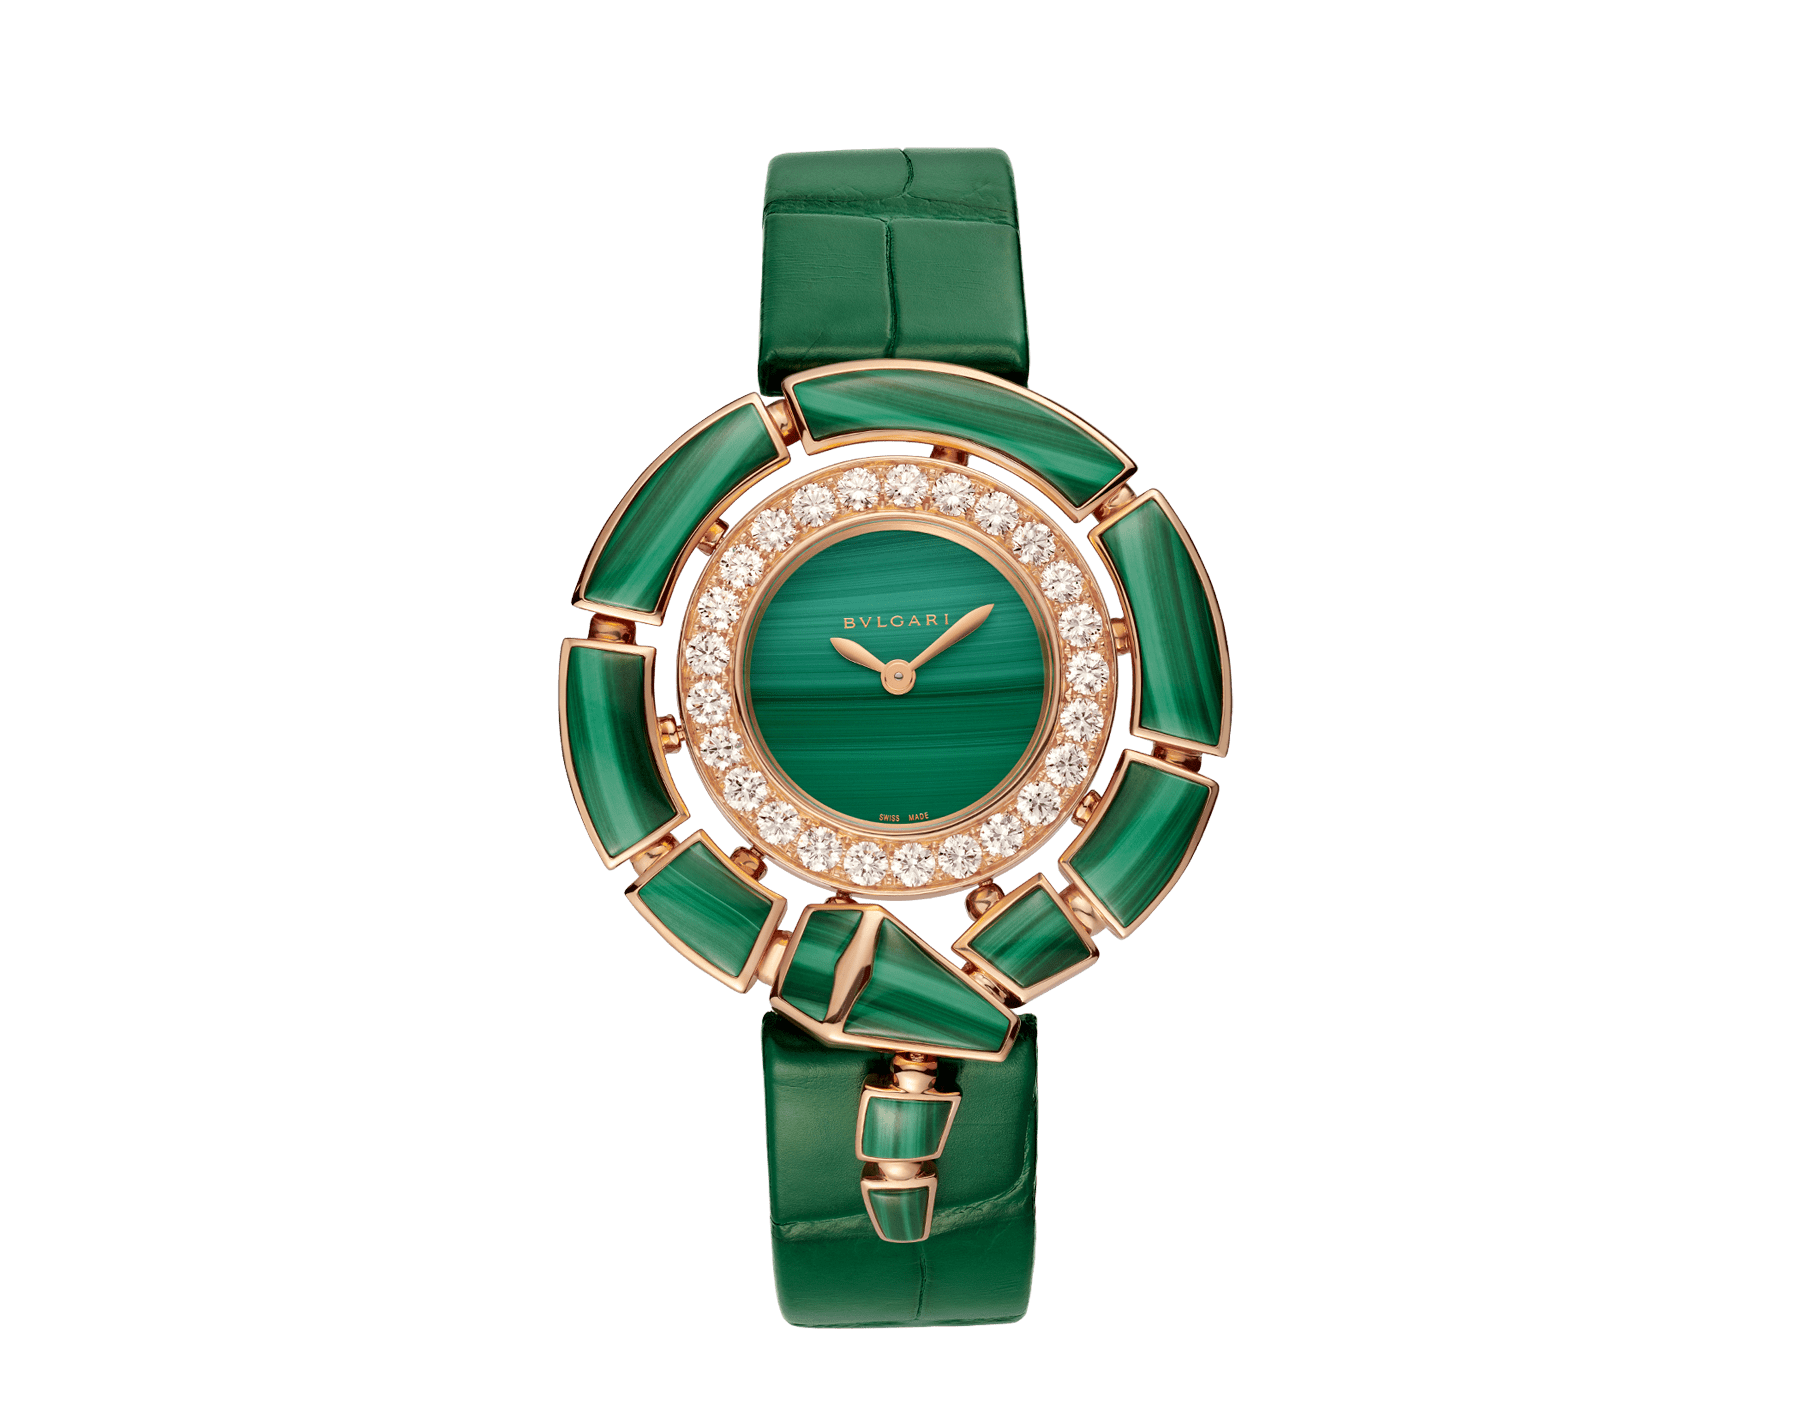 Orologio Serpenti Incantati con cassa in oro rosa 18 kt con diamanti taglio brillante ed elementi in malachite, quadrante in malachite e cinturino in alligatore verde. 102871 image 1